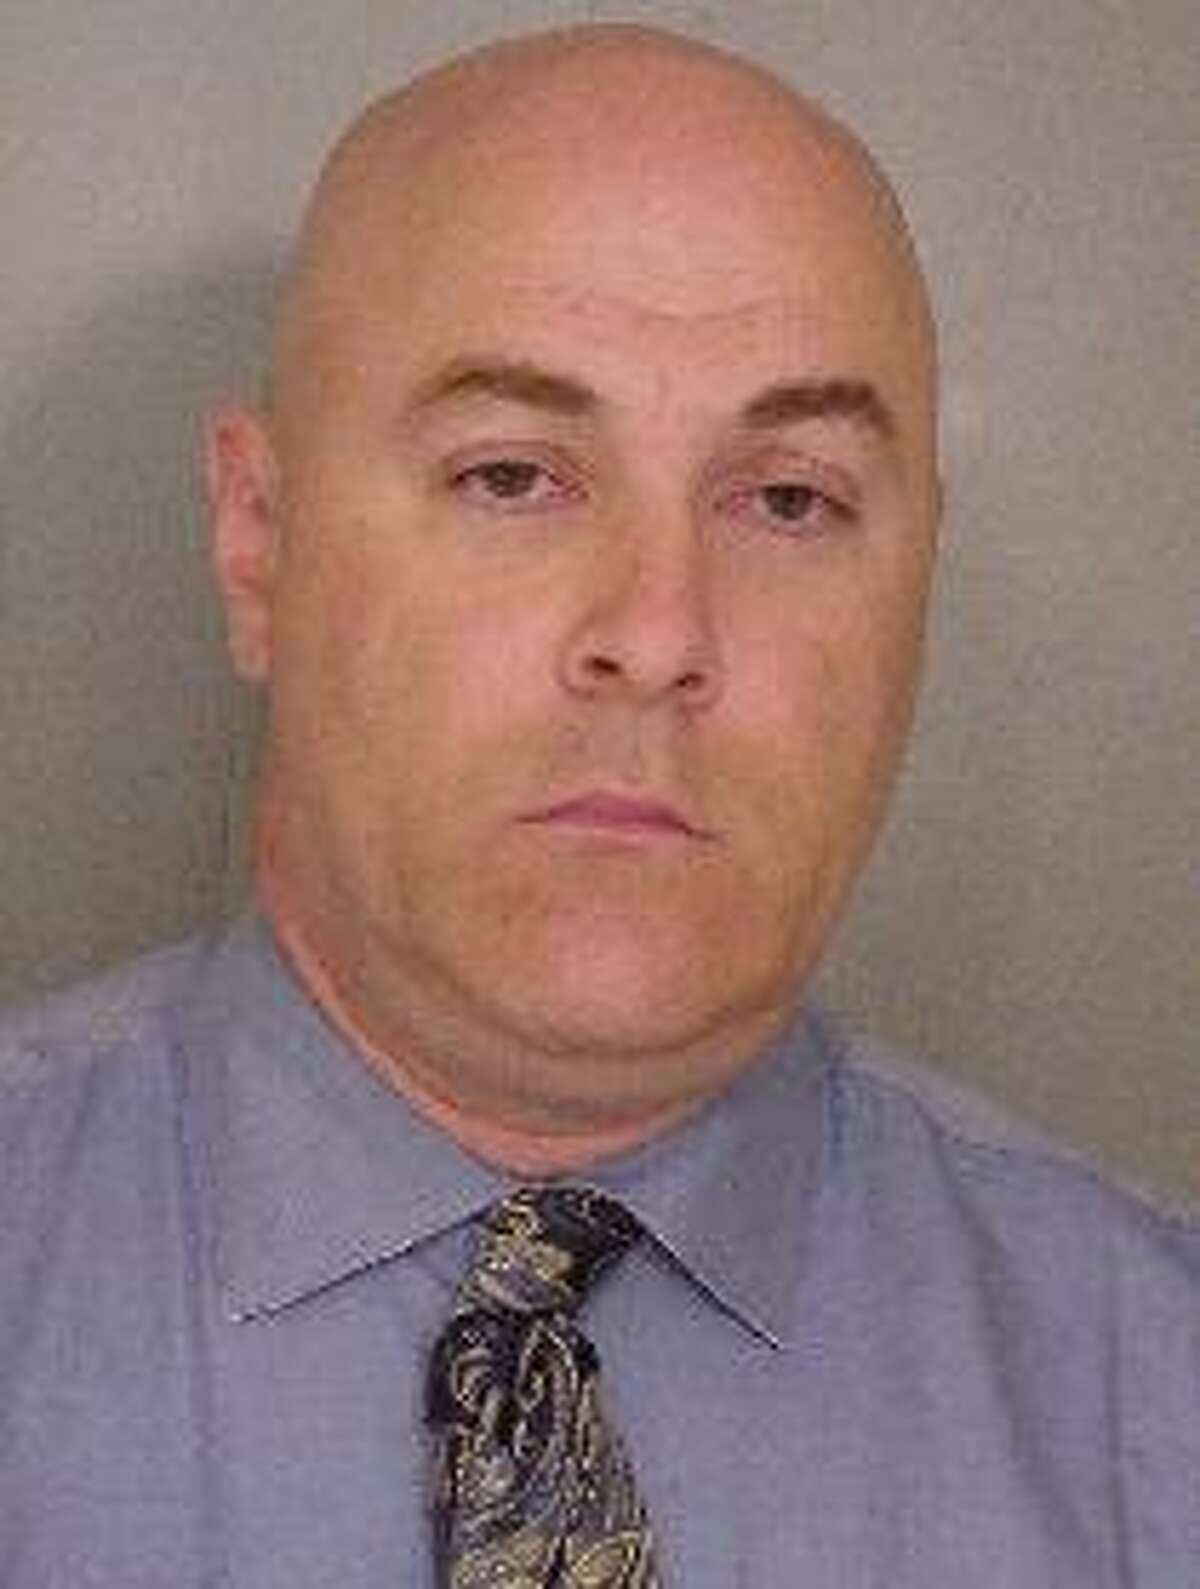 Ex-Troy City Clerk William A. McInerney in the mugshot from his arrest by State Police probing allegations of ballot fraud in Troy. (State Police)